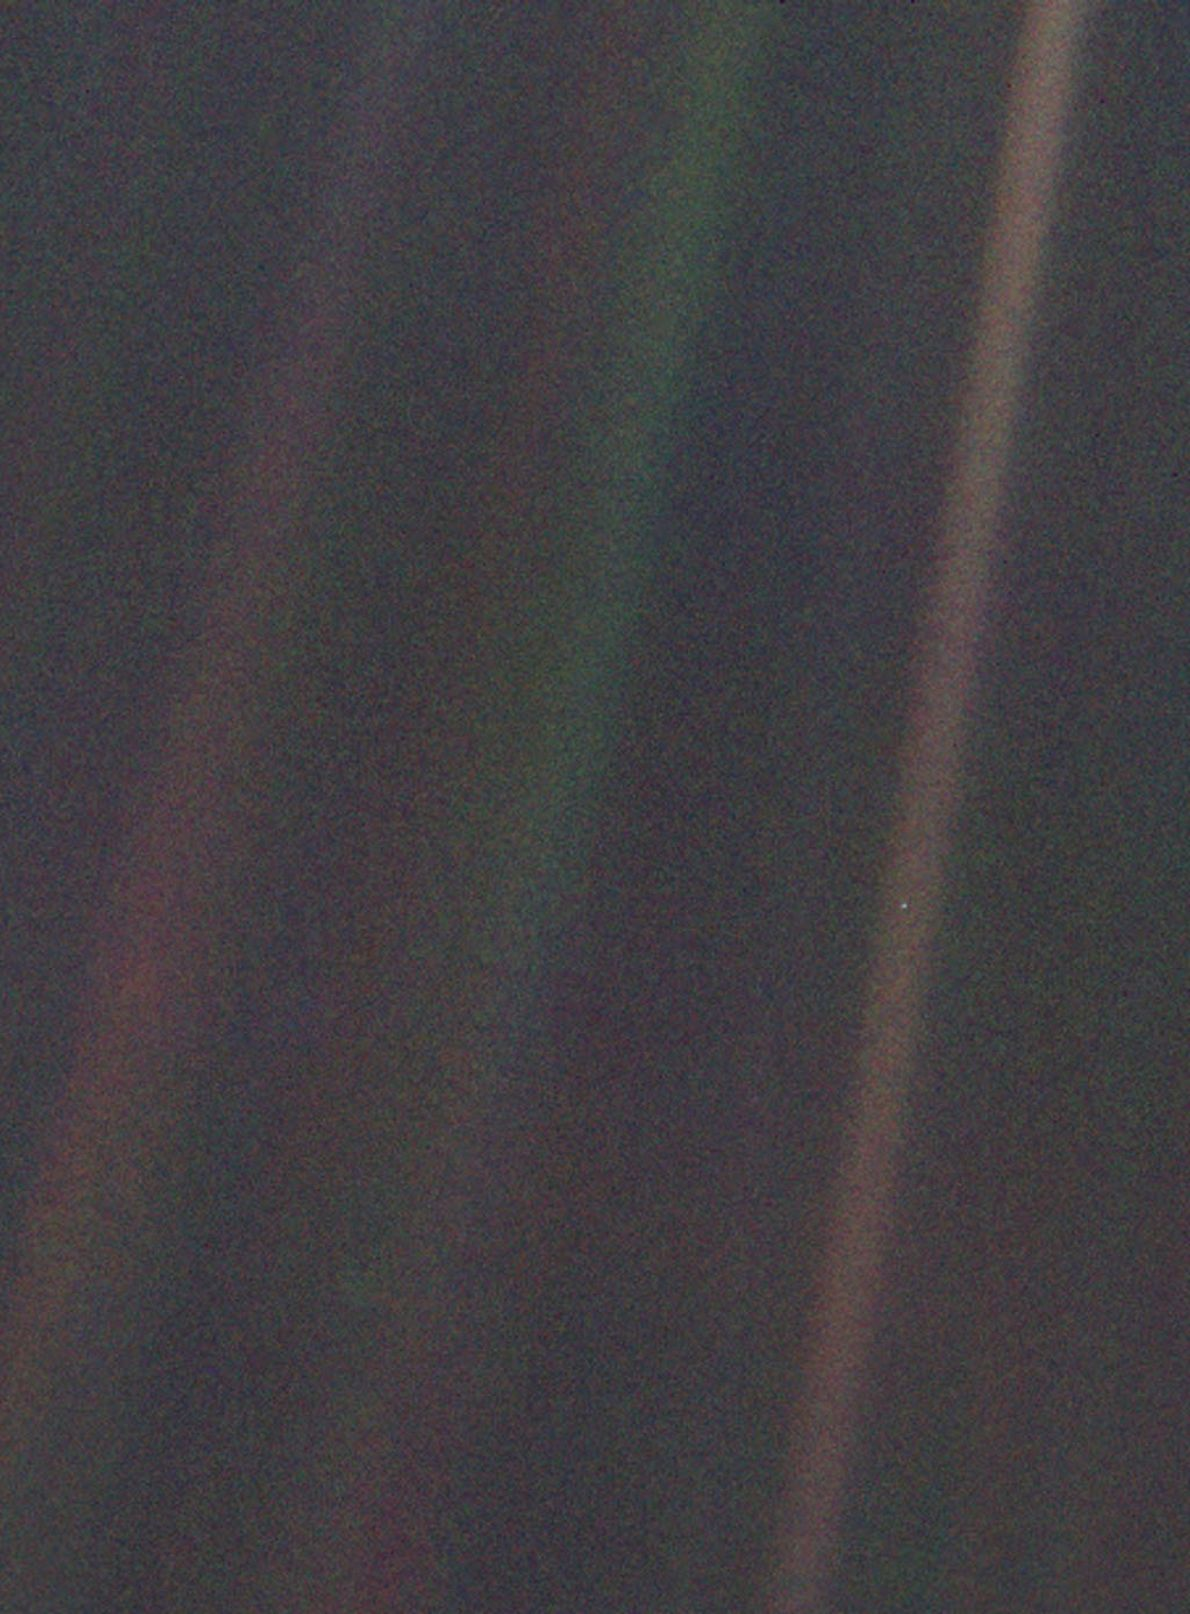 In 1990, the Voyager 1 spacecraft snapped this colour picture of Earth, later dubbed the Pale ...